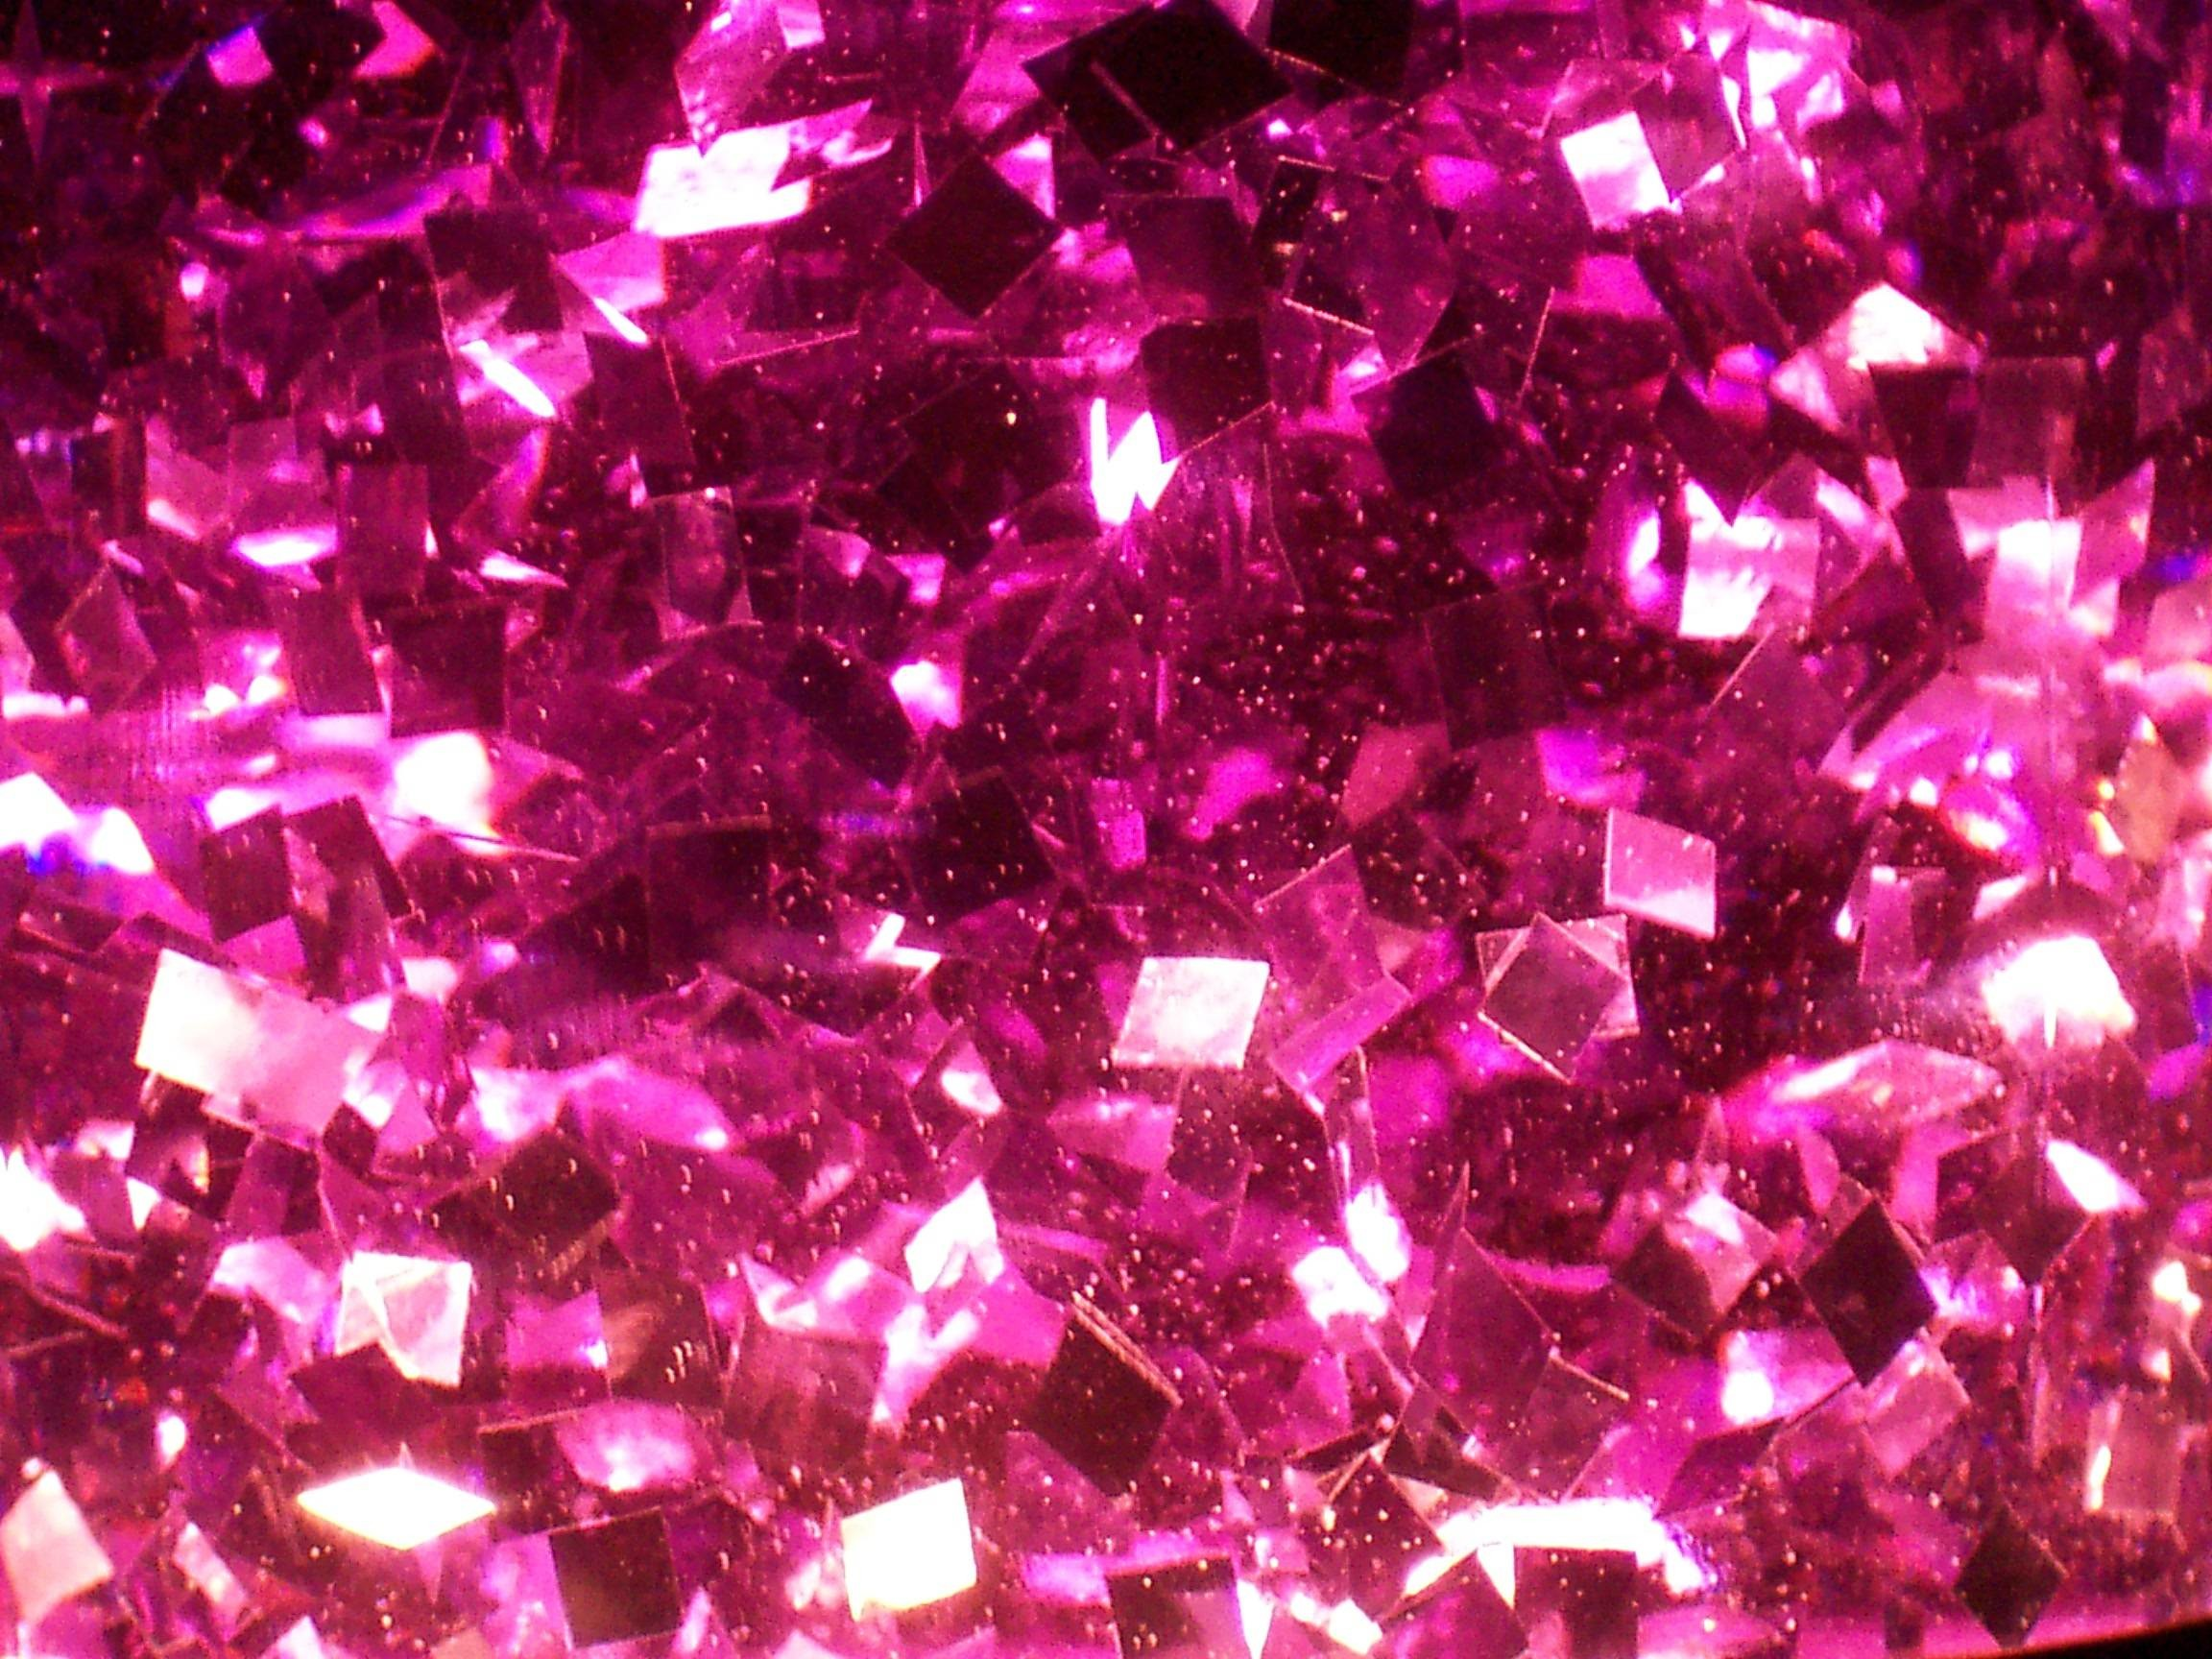 2304x1728 pink glitter background wallpaper 6